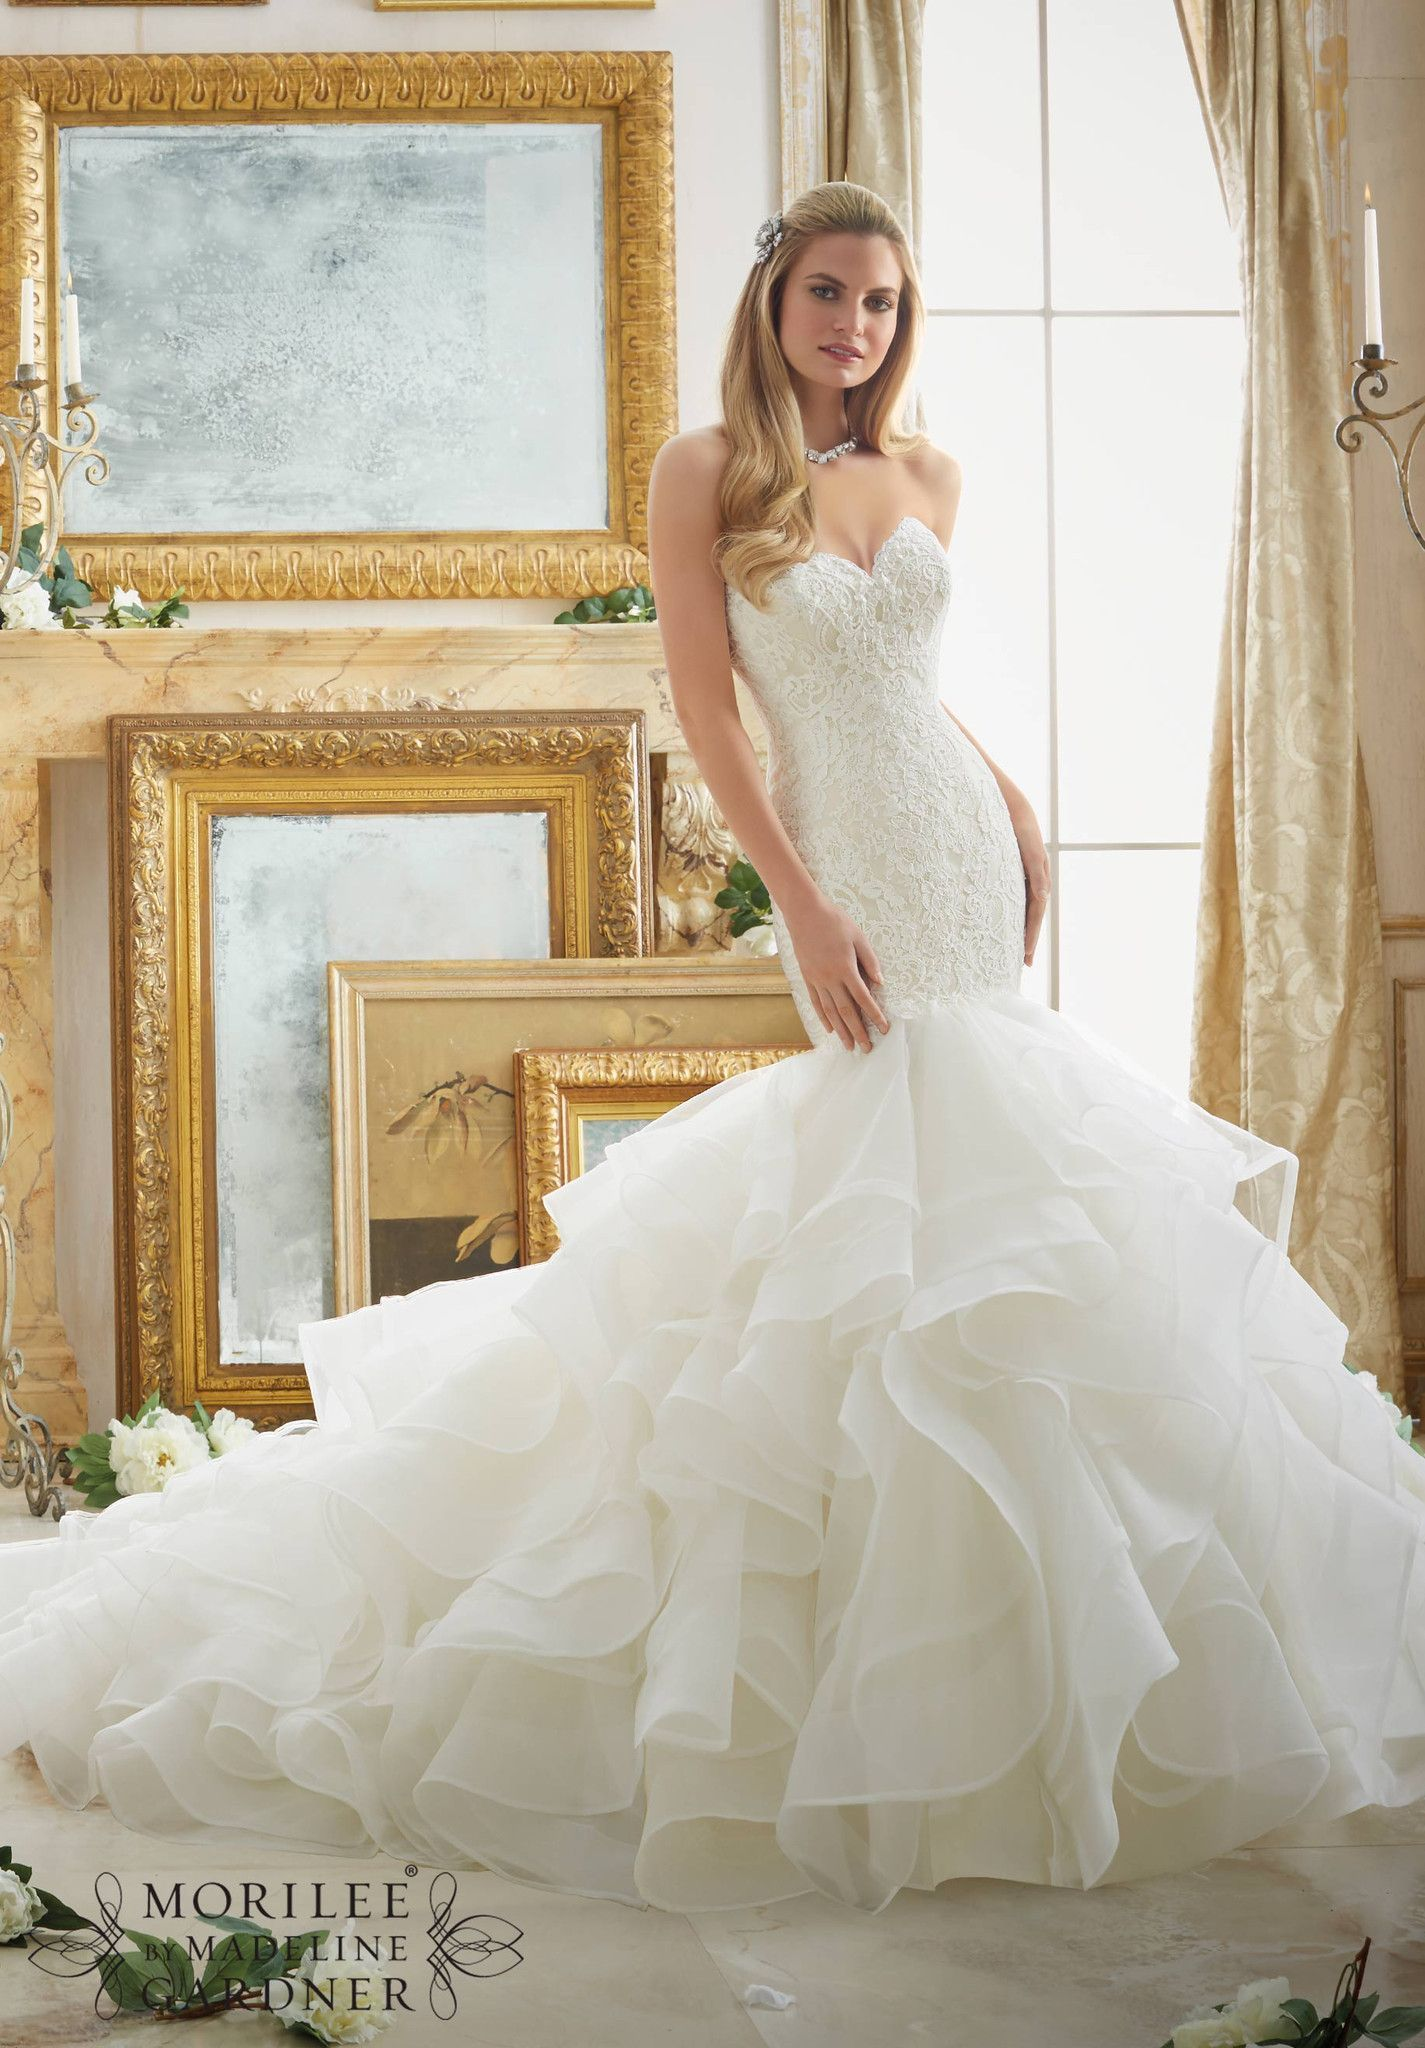 Mori lee all dressed up bridal gown great wedding gowns